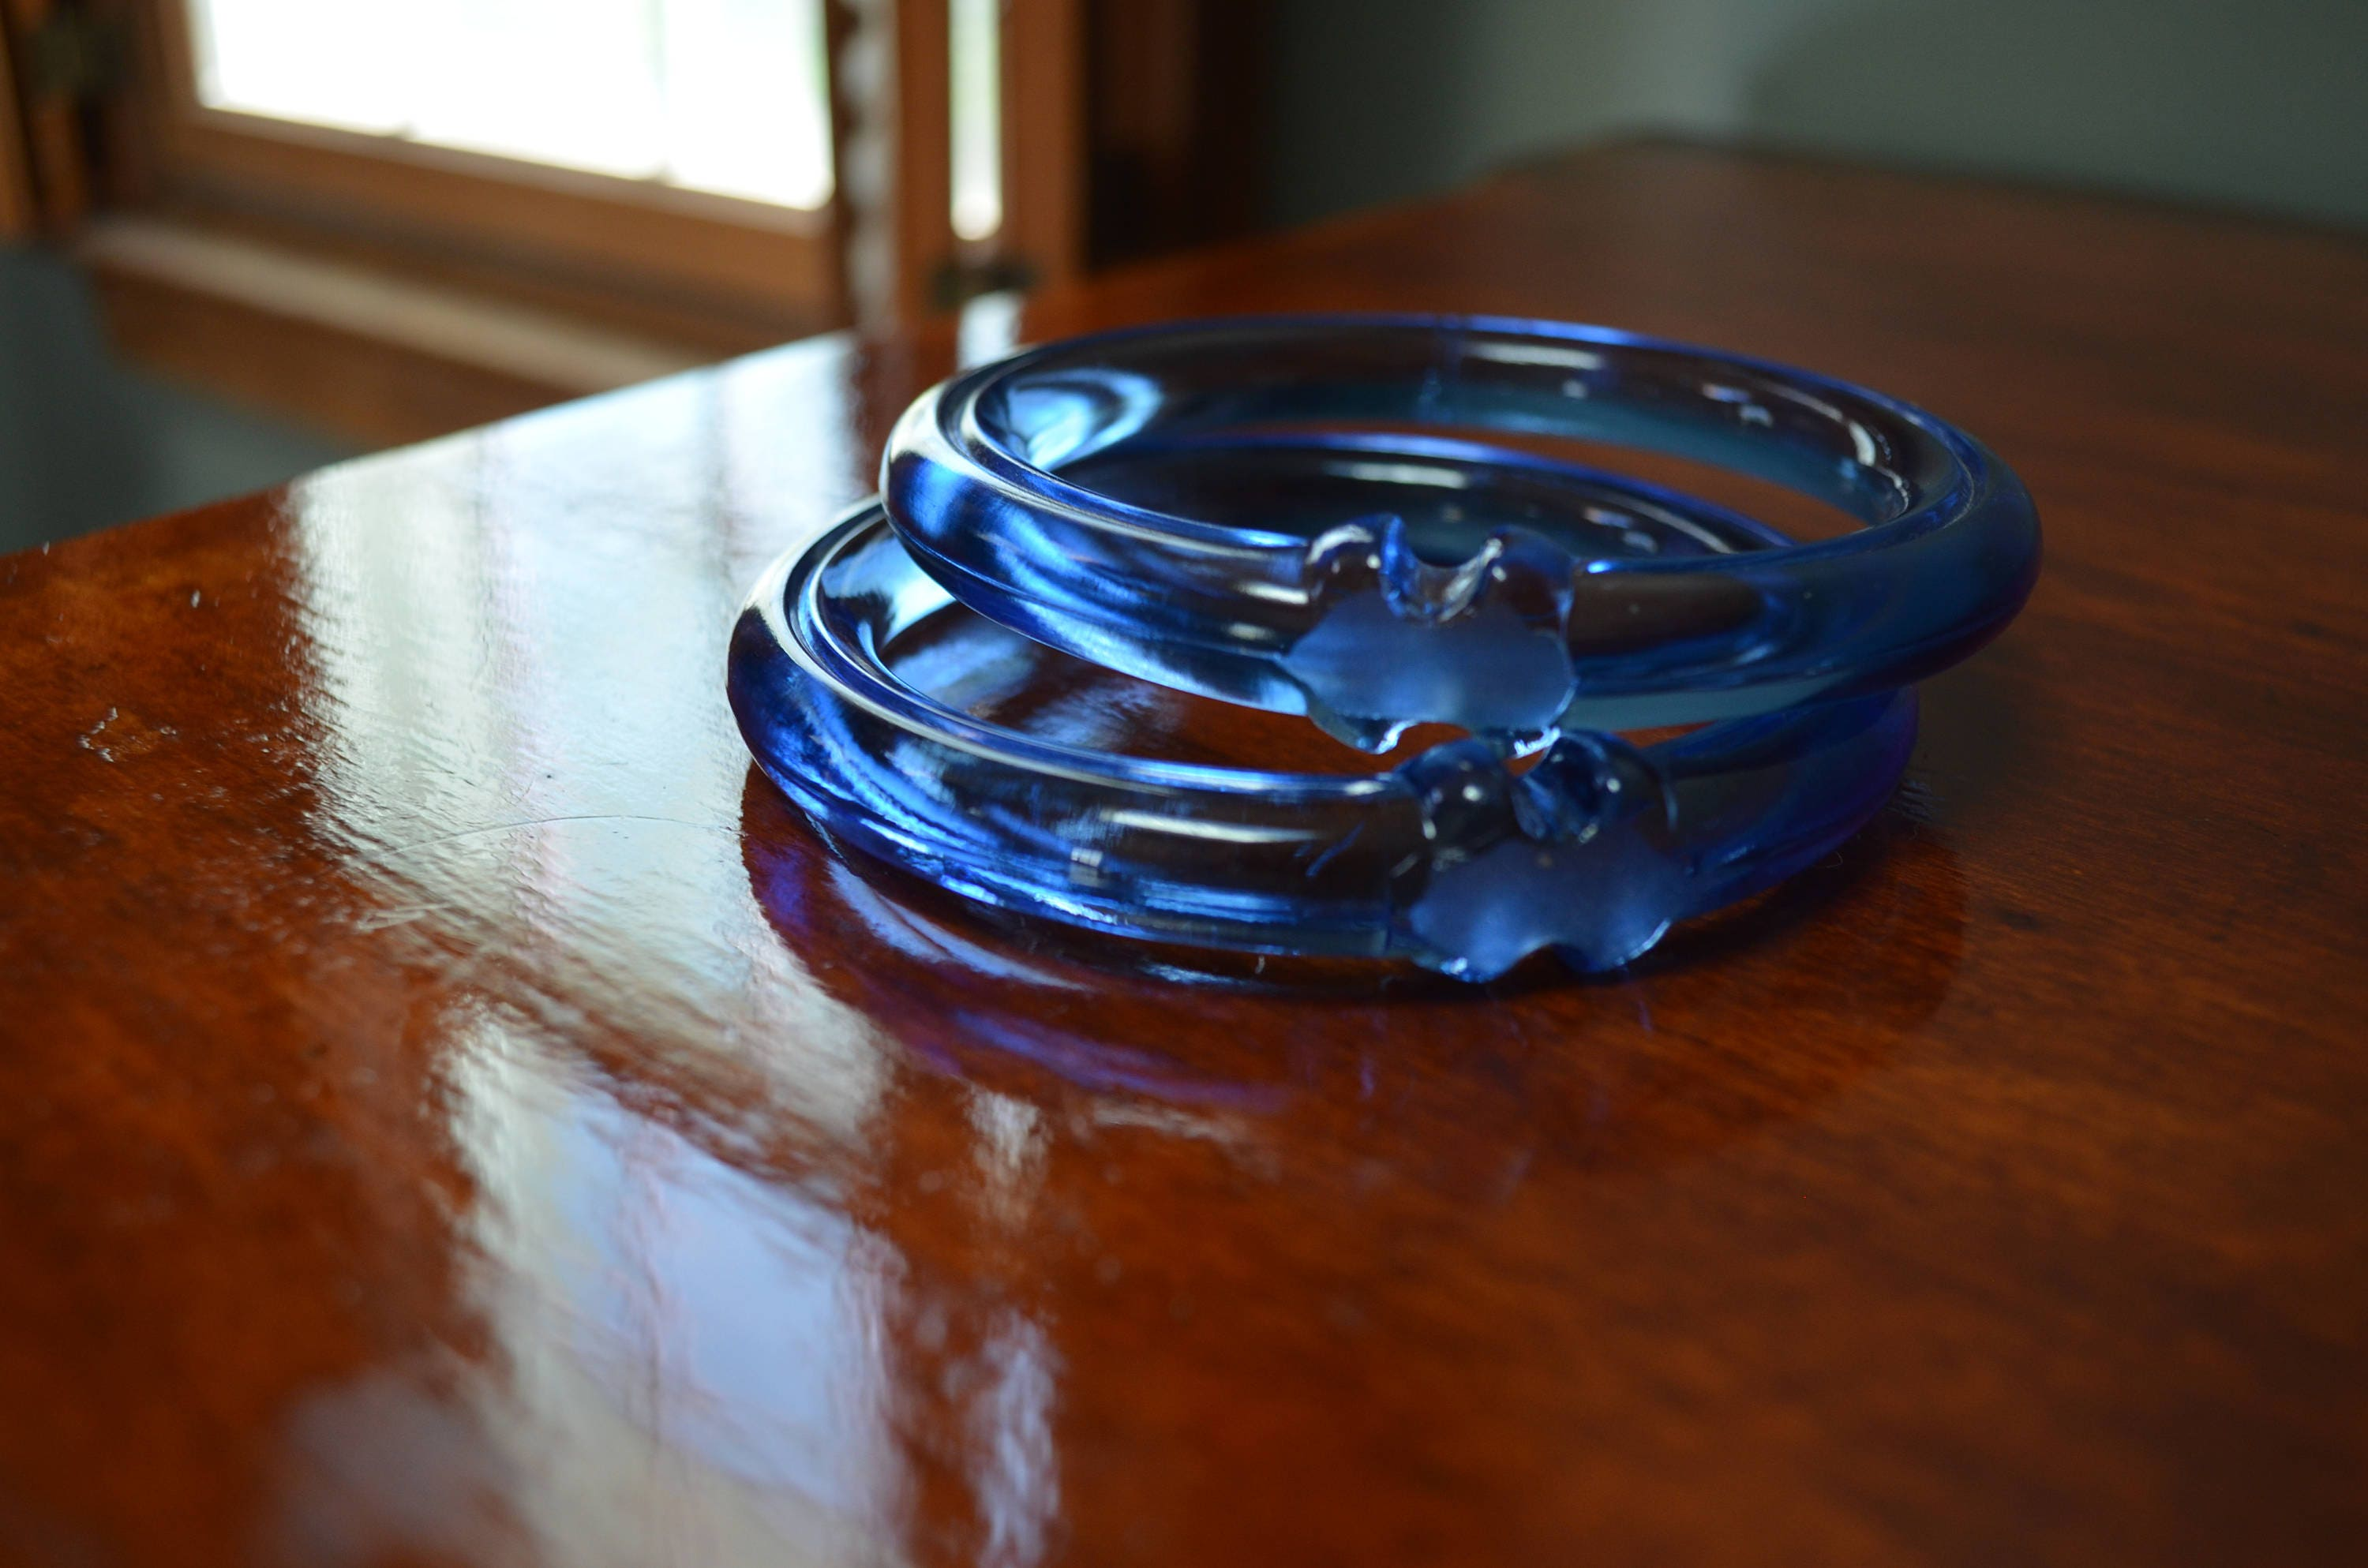 Blue glass rings drapery rings 3 inch craft supply blue for 3 inch rings for crafts